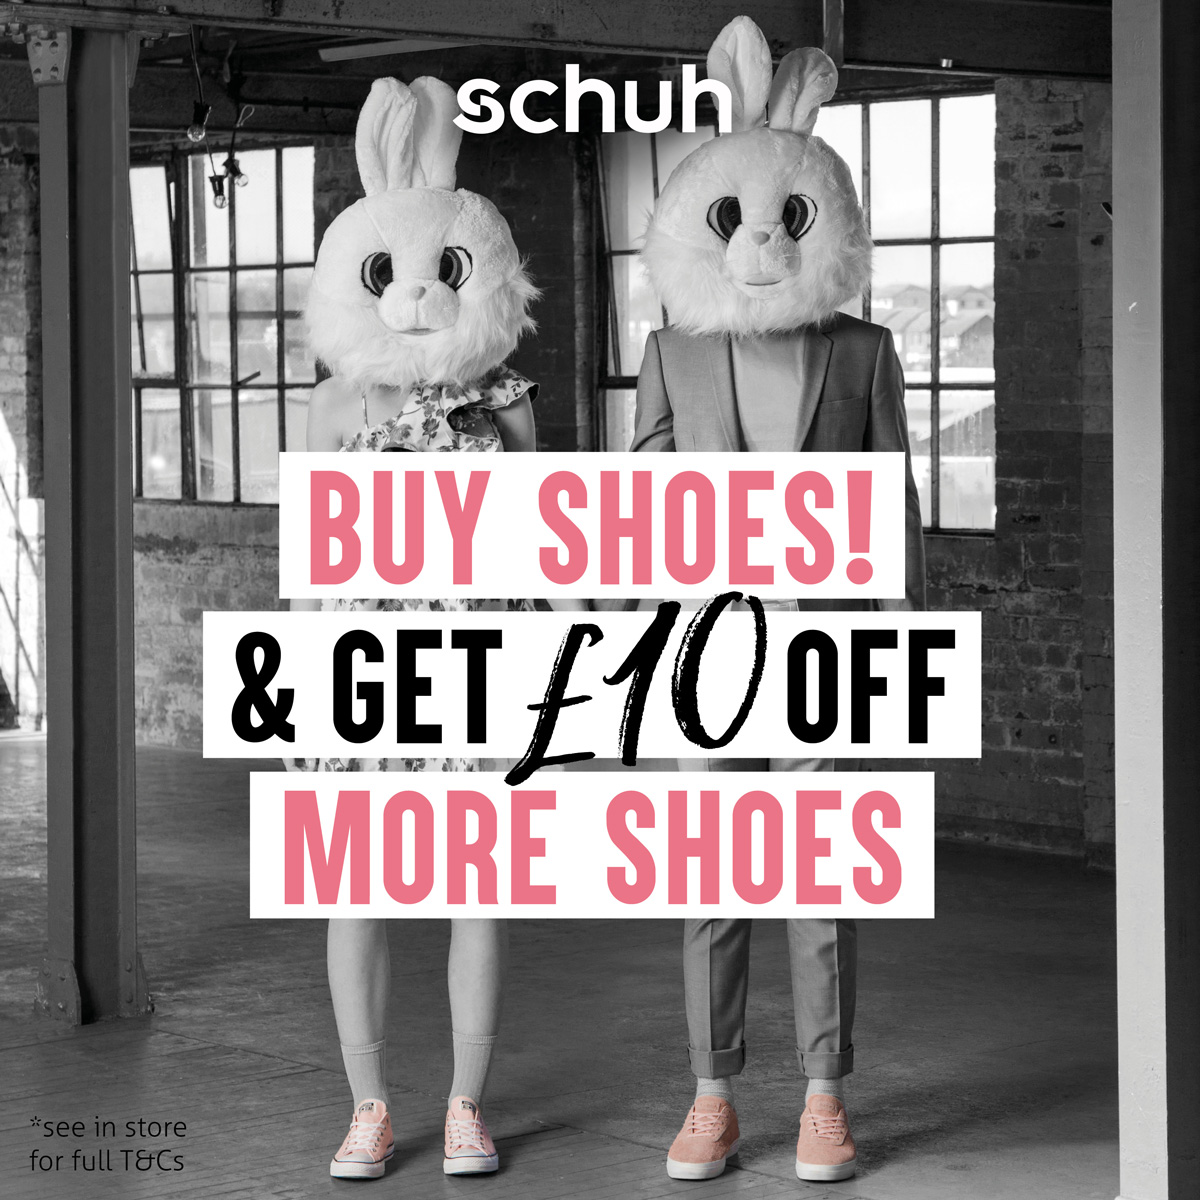 Easter Promotion in Schuh